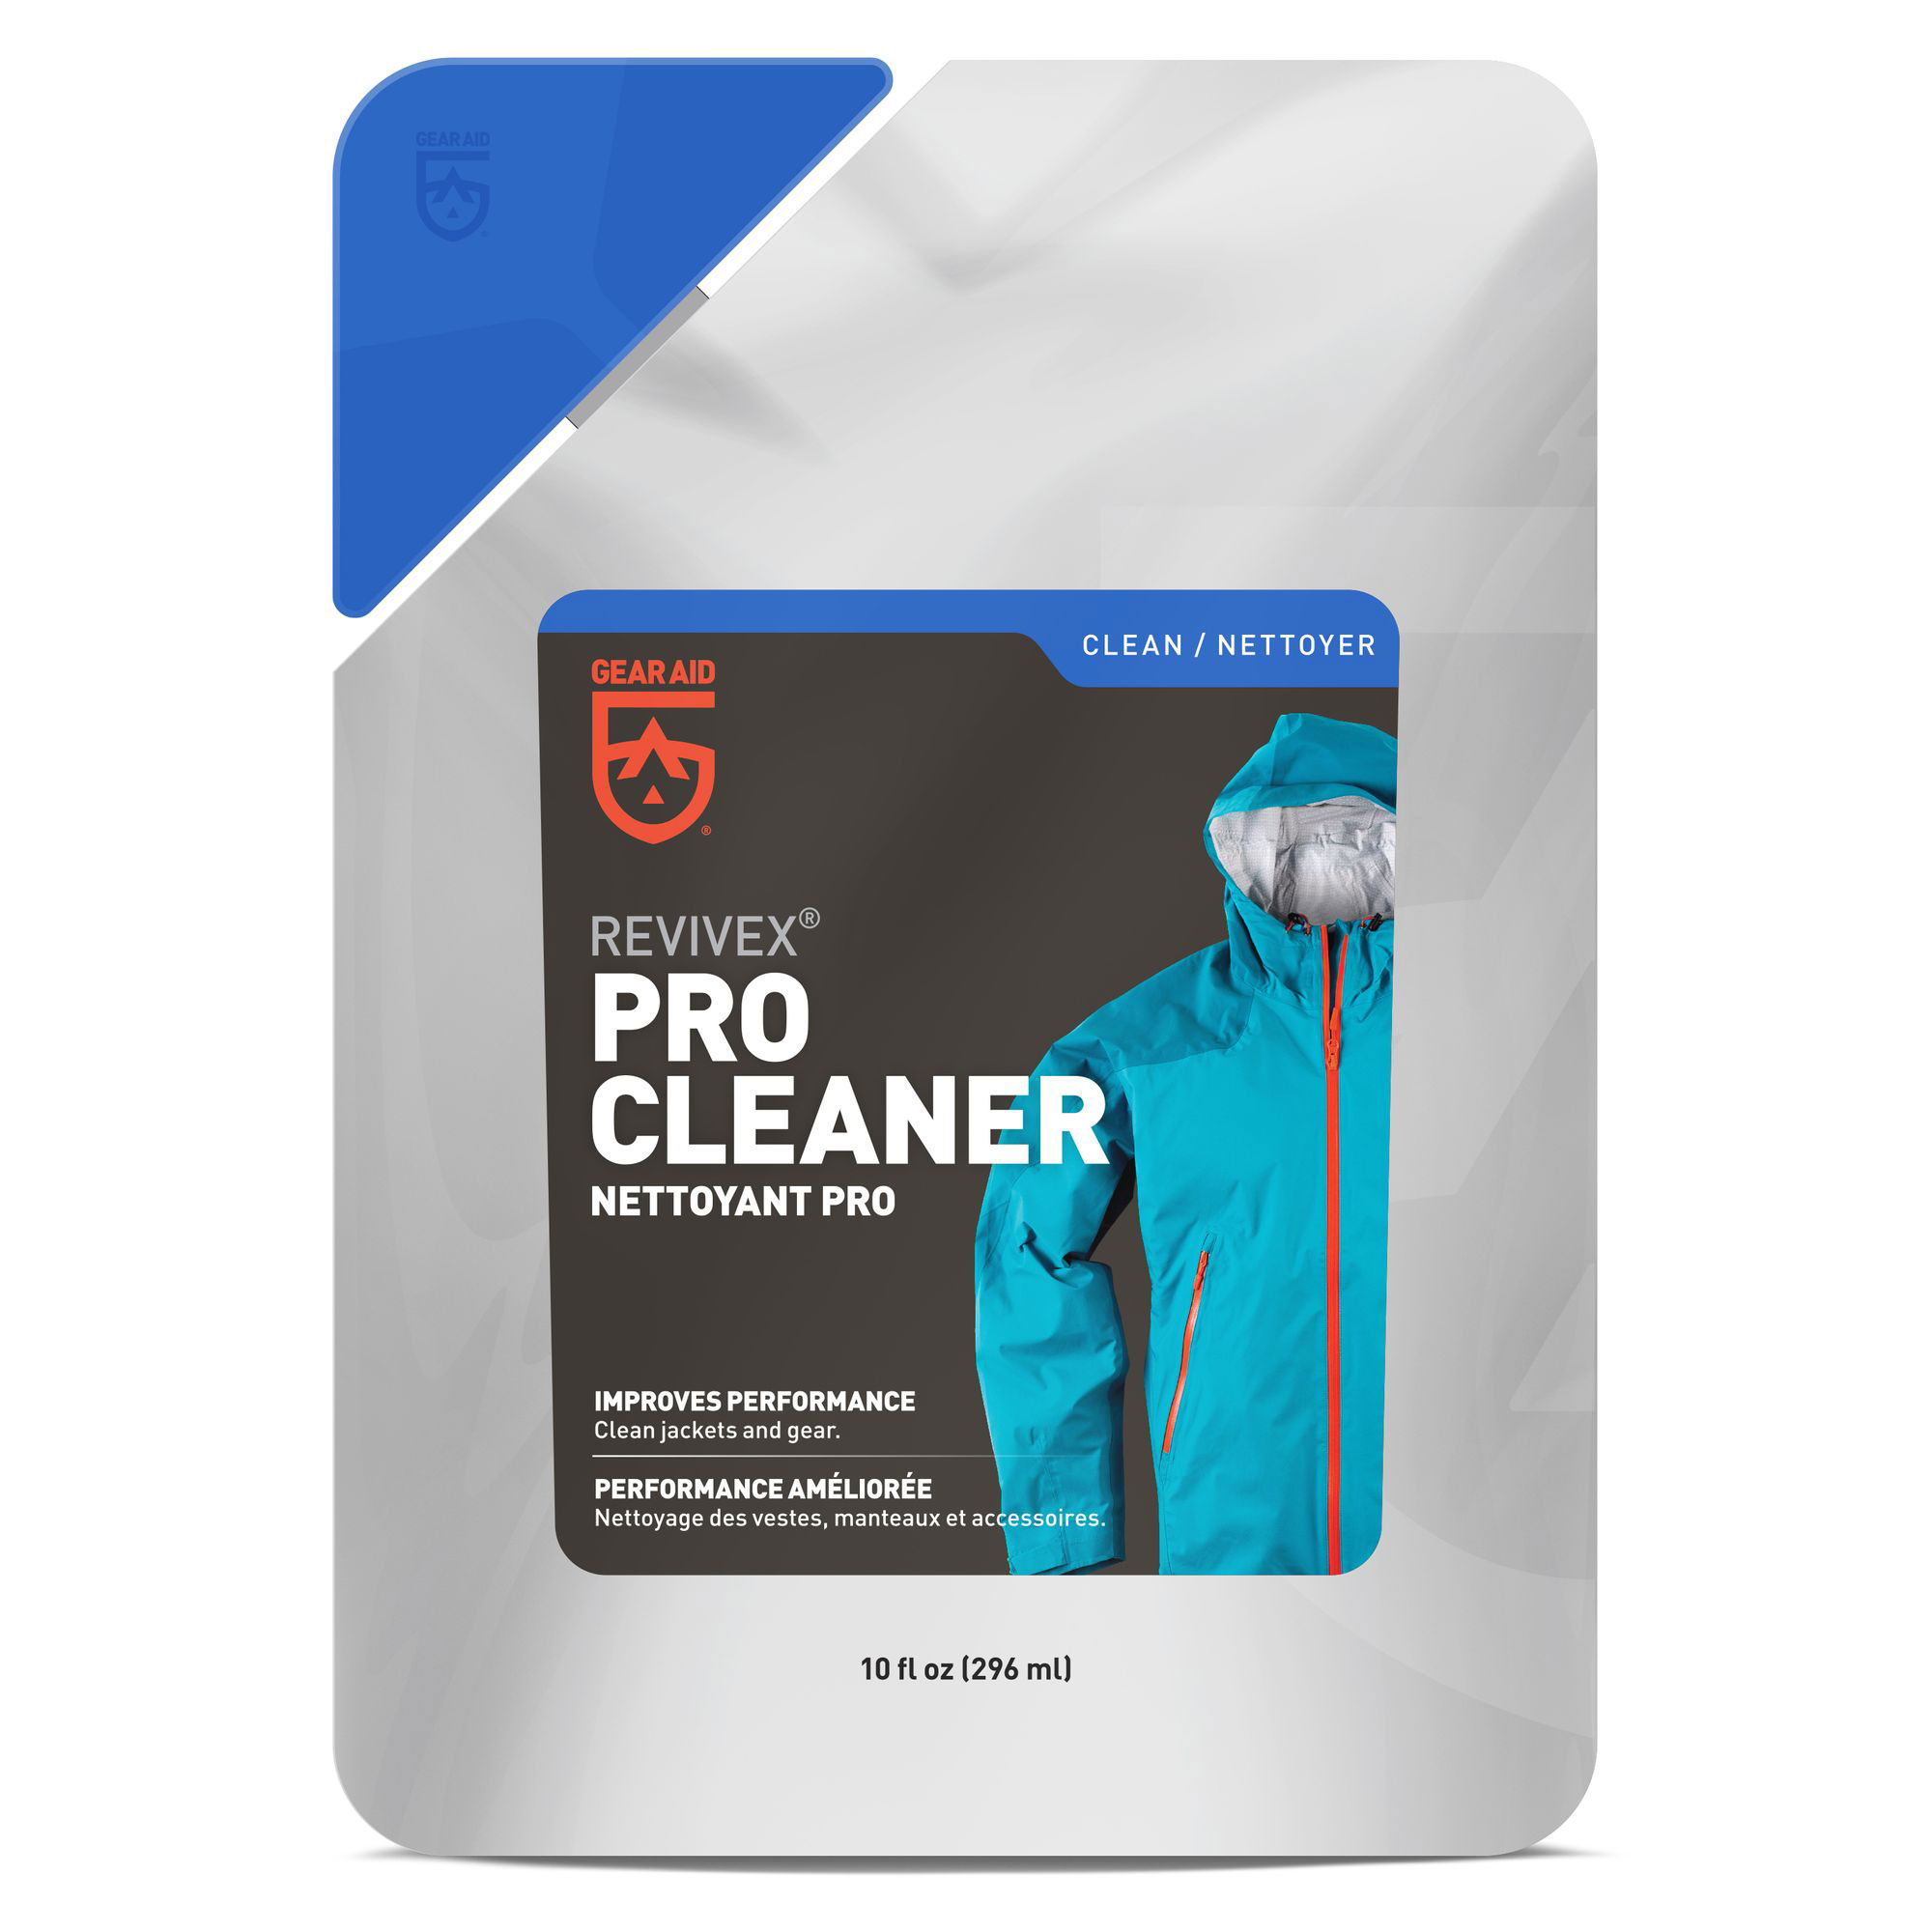 Gear Aid ReviveX Pro Cleaner